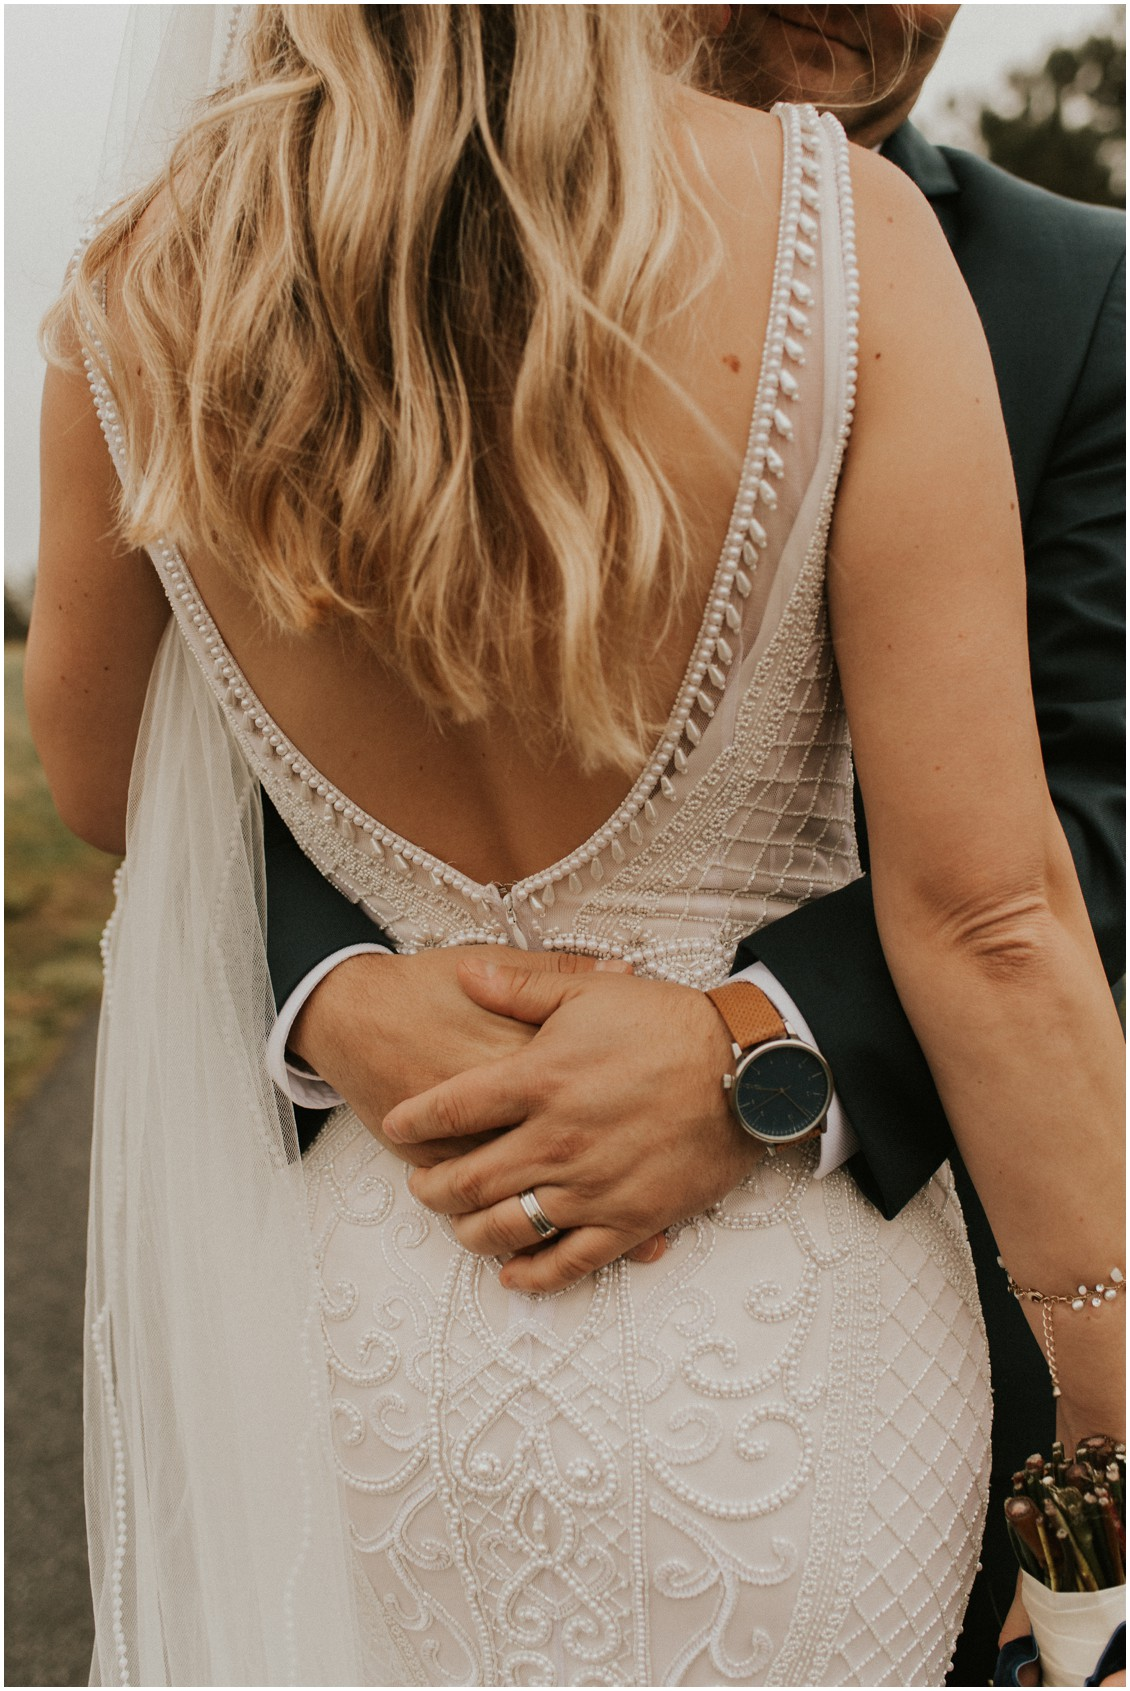 Bride and groom portrait groom details and beaded gown in winter wedding | My Eastern Shore Wedding | Bear Trap Dunes | Coastal Tented Events